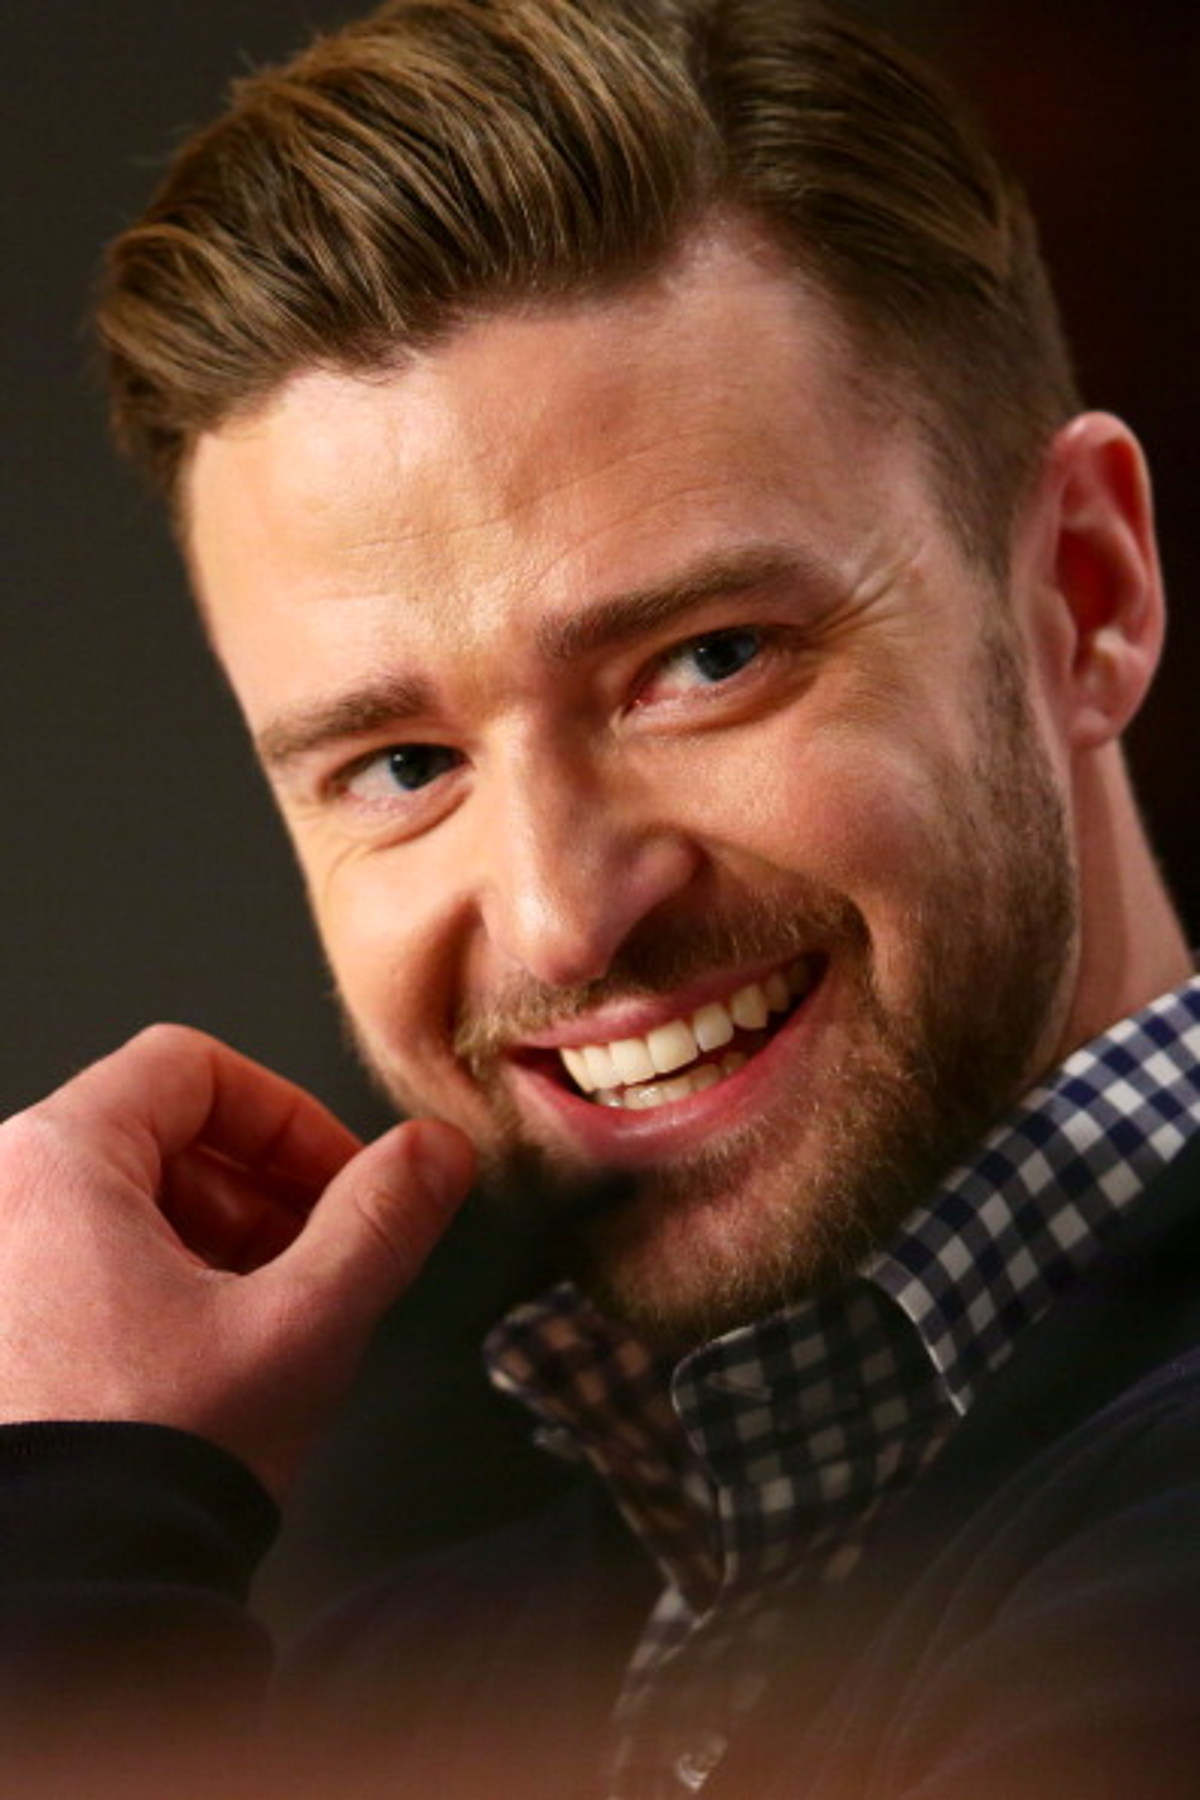 Justin Timberlake Nudity-Heavy Video Remains on YouTube